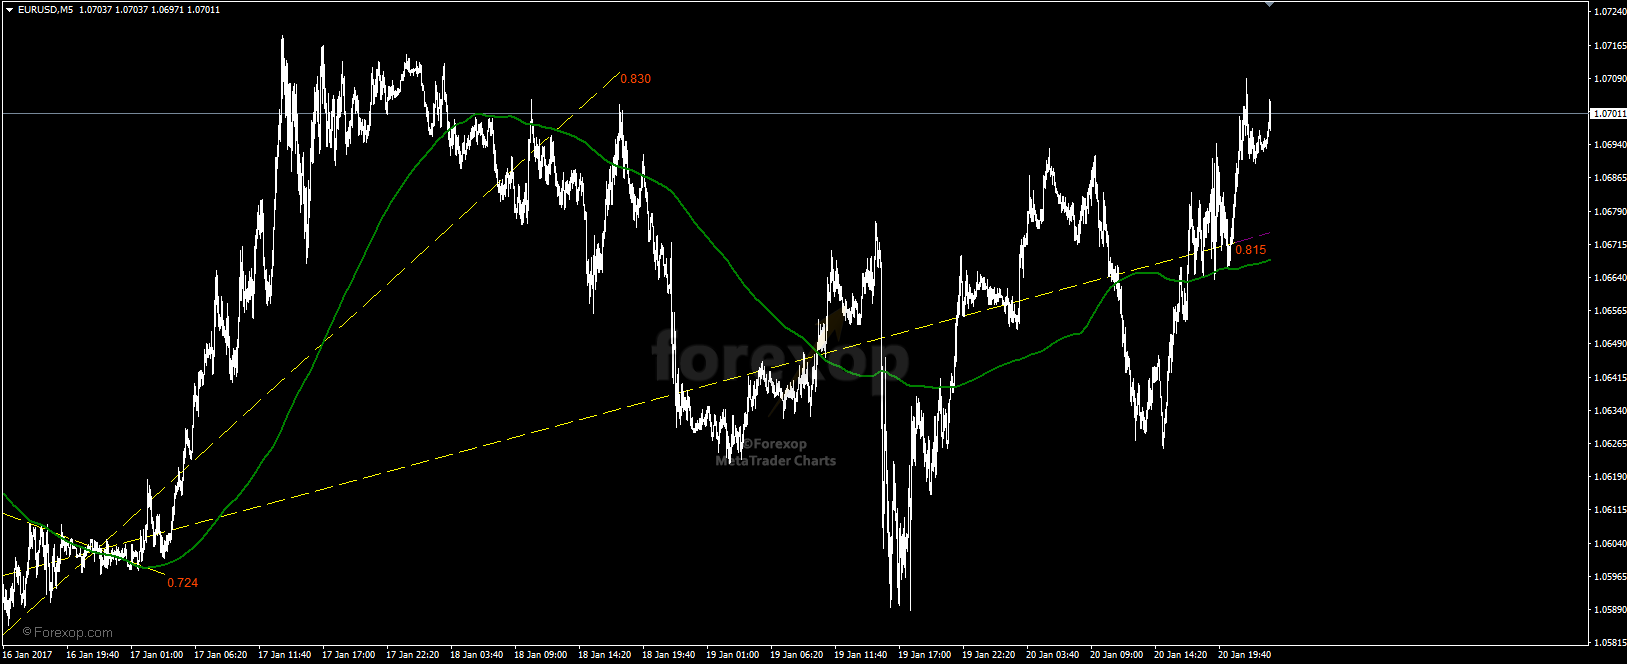 Figure 4: Trends detected on shorter timeframe, chart EURUSD 5 minute